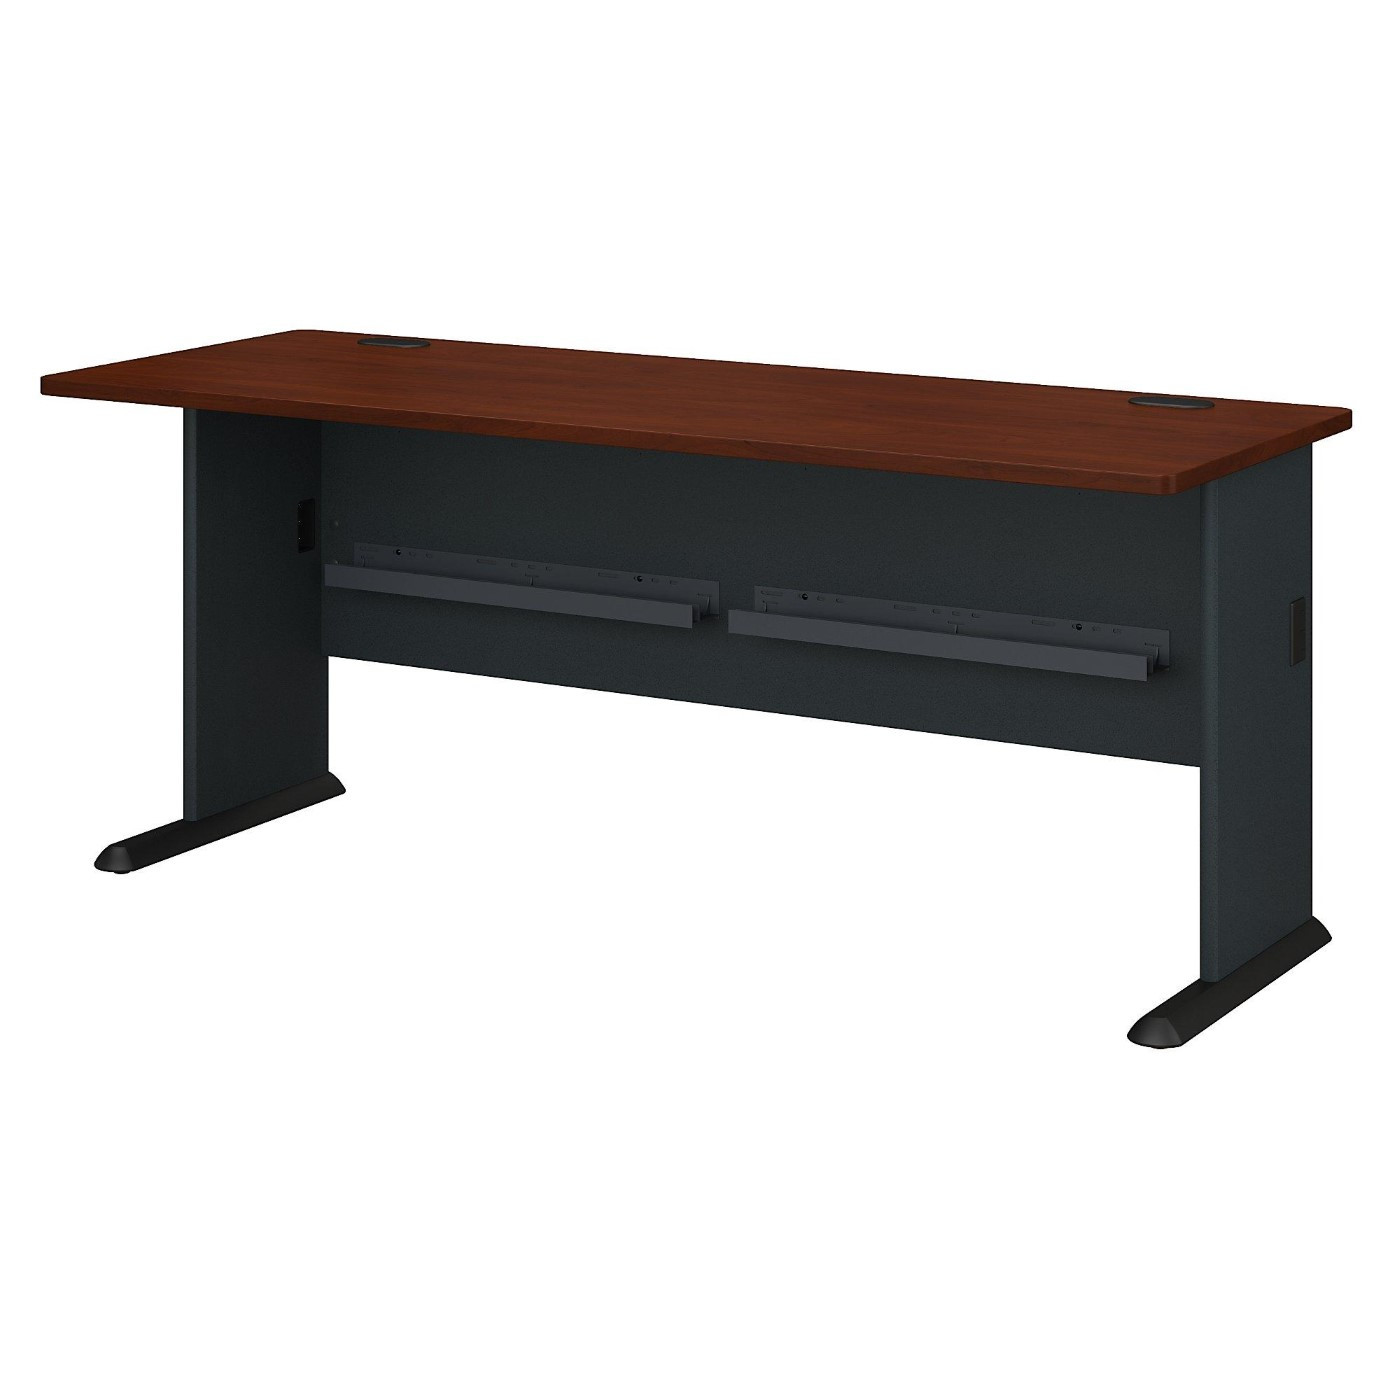 <font color=#c60><b>BUSH BUSINESS FURNITURE SERIES A 72W DESK. FREE SHIPPING</font></b>